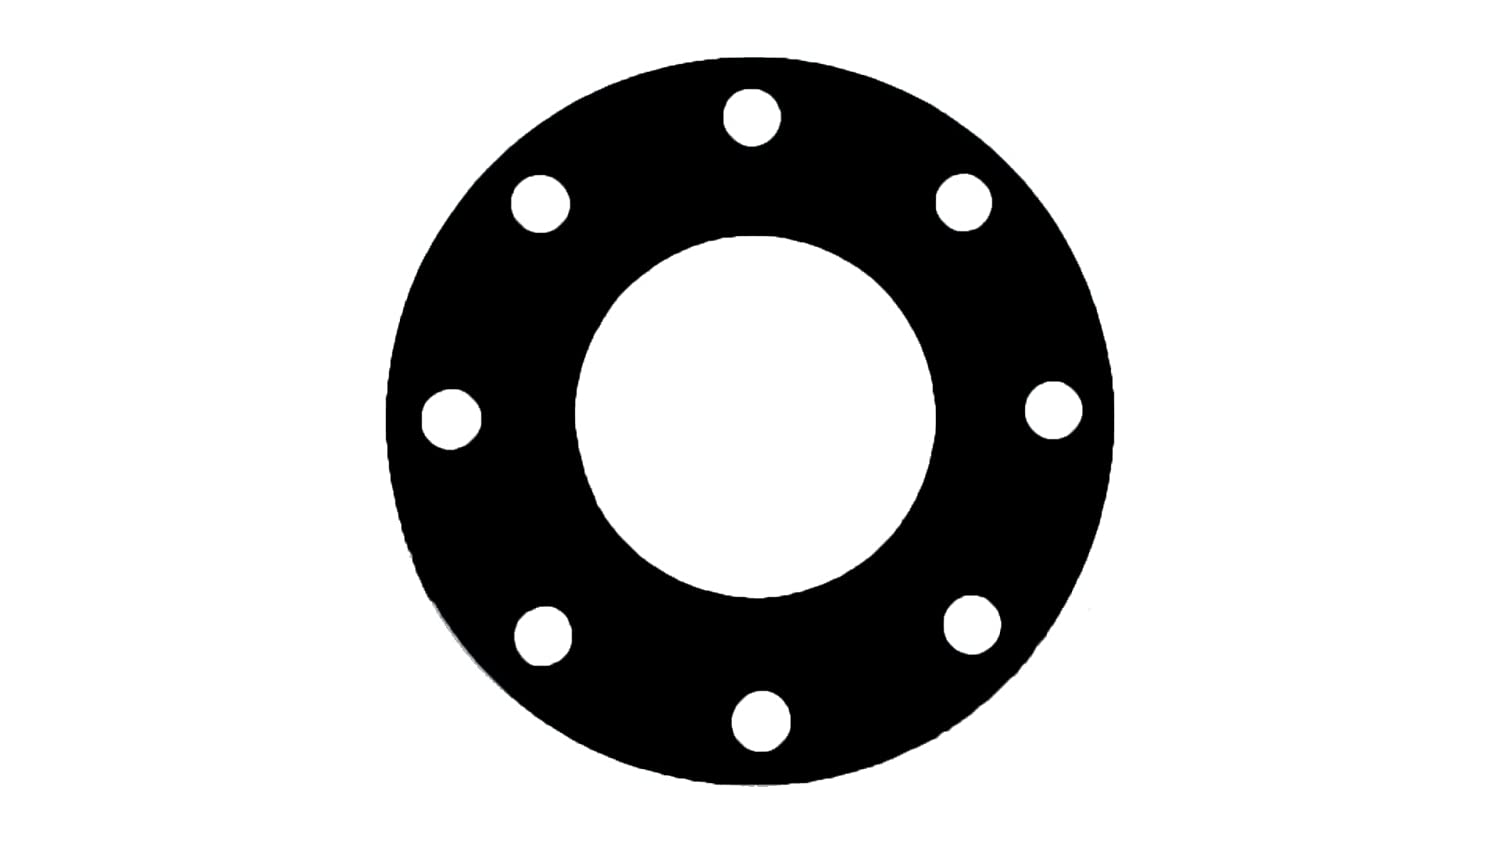 CFF7000T.1600.125.150X1 7000T Grafoil Full Face Gasket Pressure Class 150# 1//8 Thick Sterling Seal /& Supply Inc 16 Pipe Size Expanded Flexible Graphite 16 ID